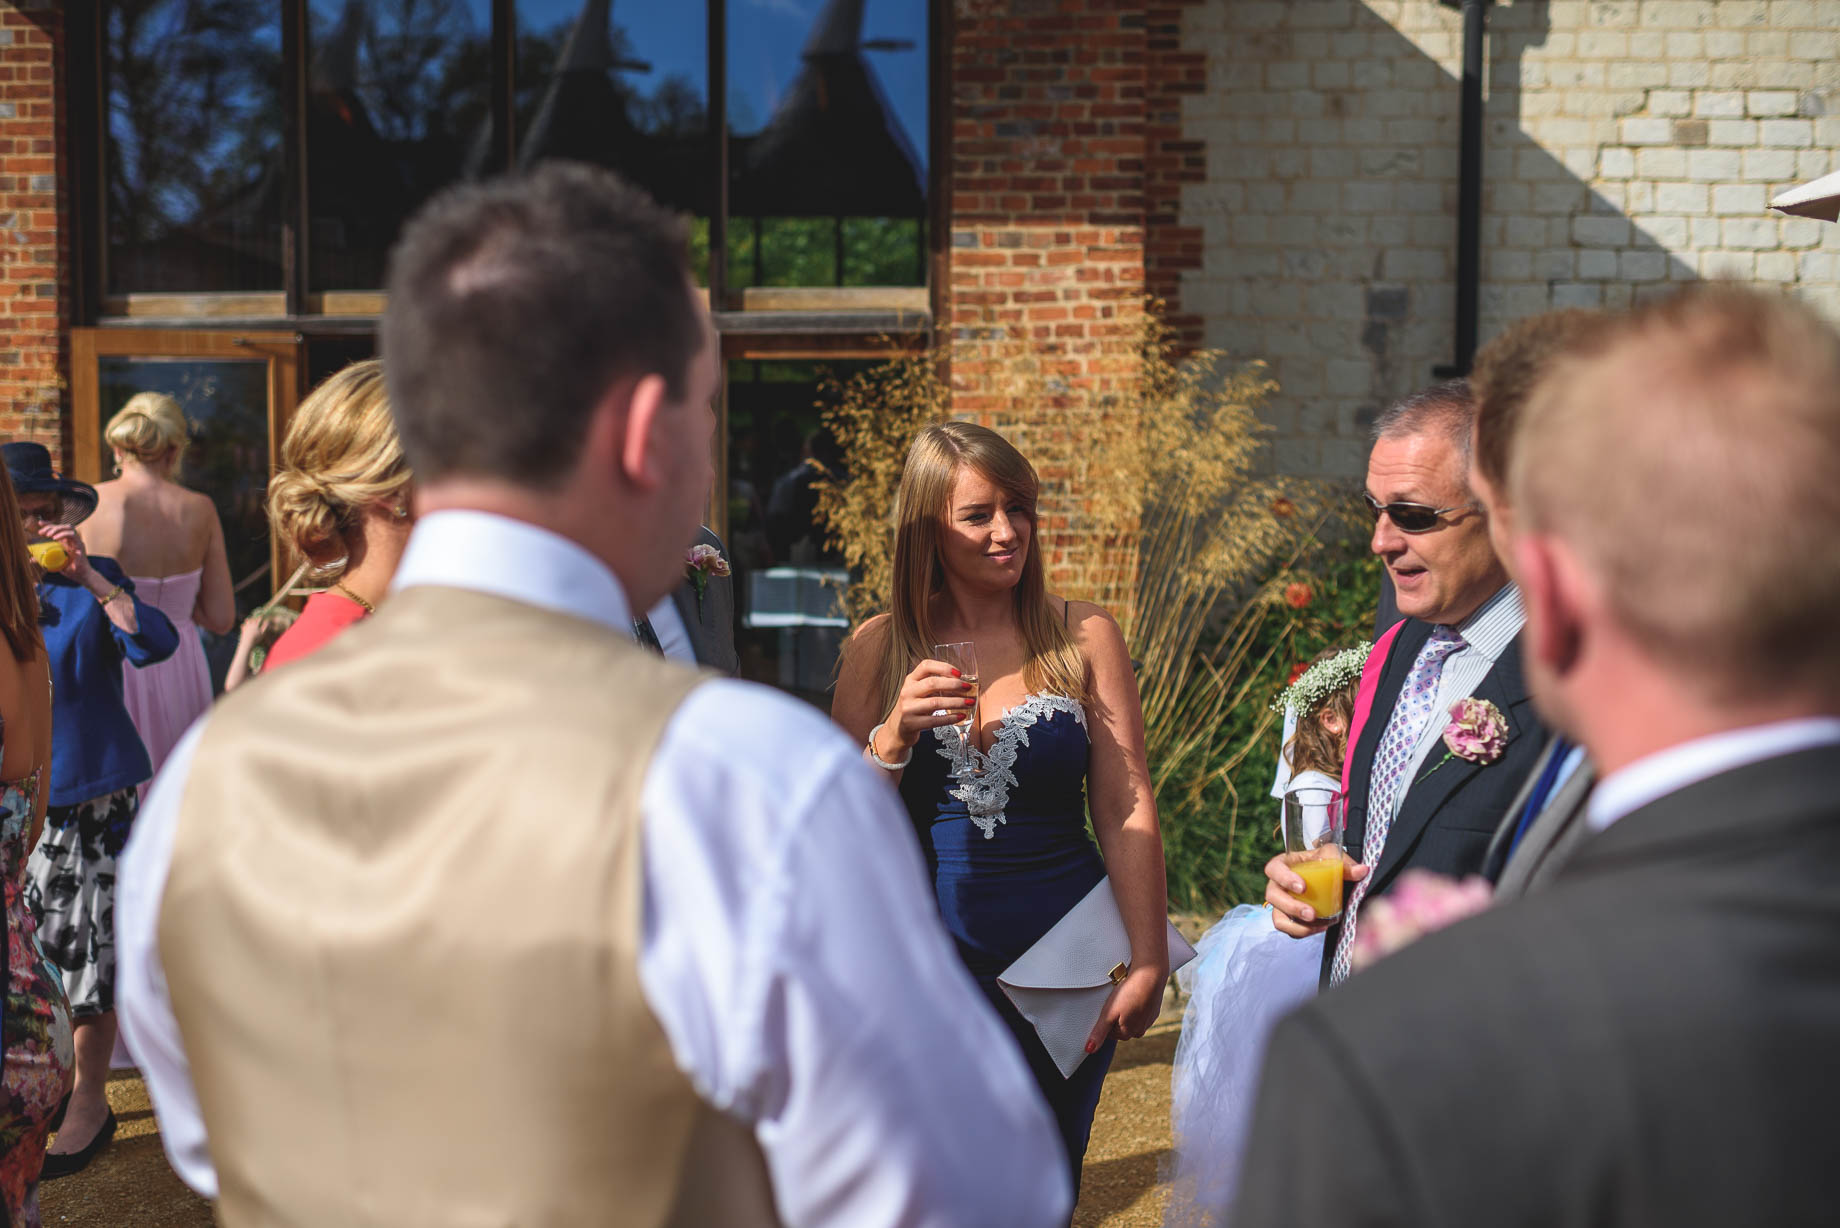 Bury Court Barn wedding photography - Guy Collier - Kate and Russ (89 of 187)